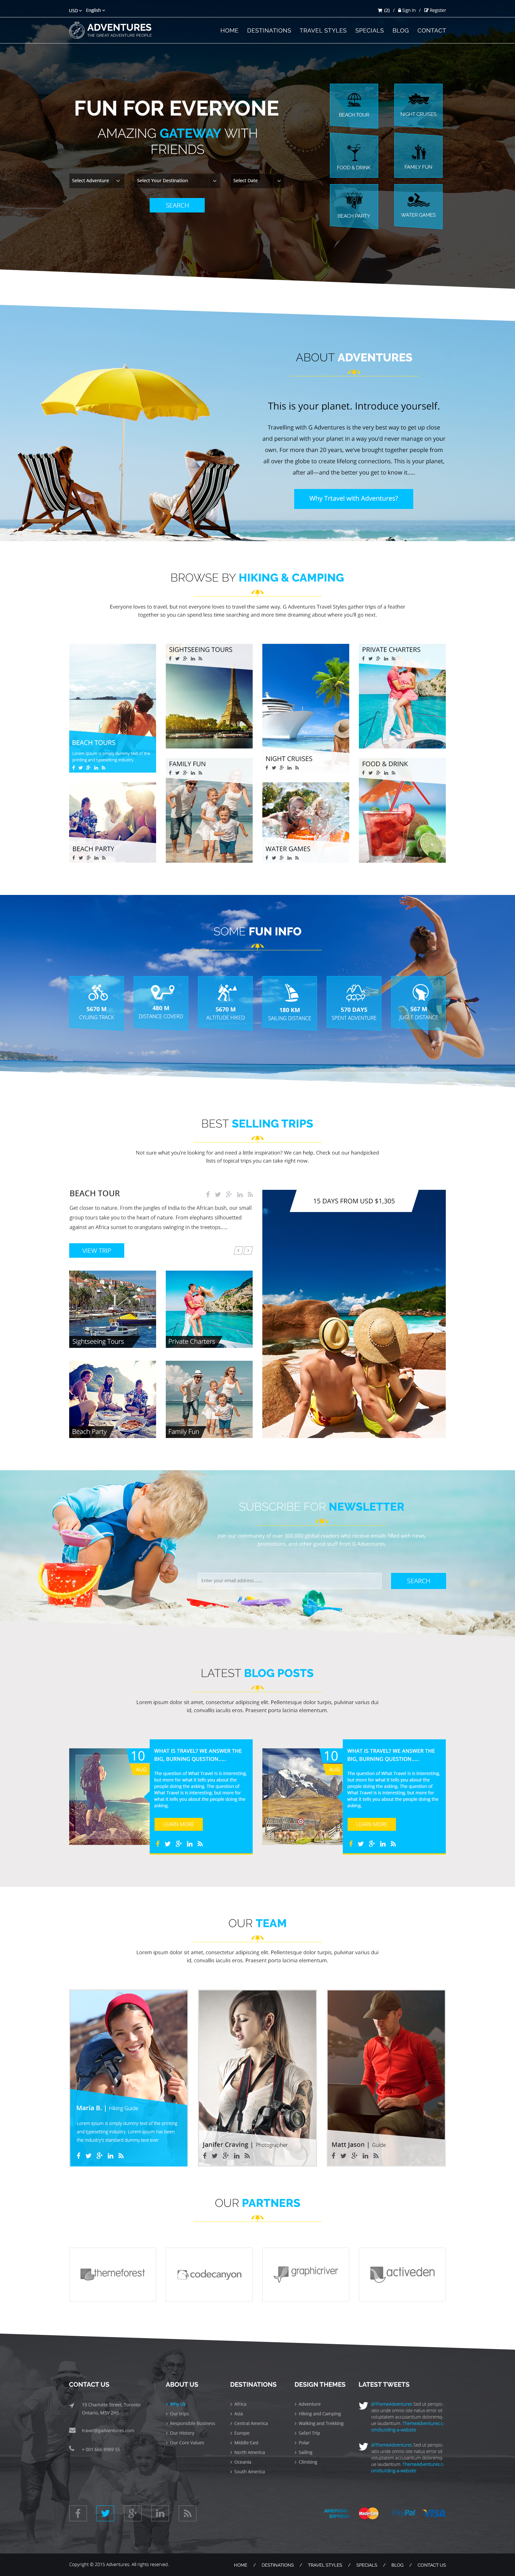 Adventures and Tour PSD Template example image 4